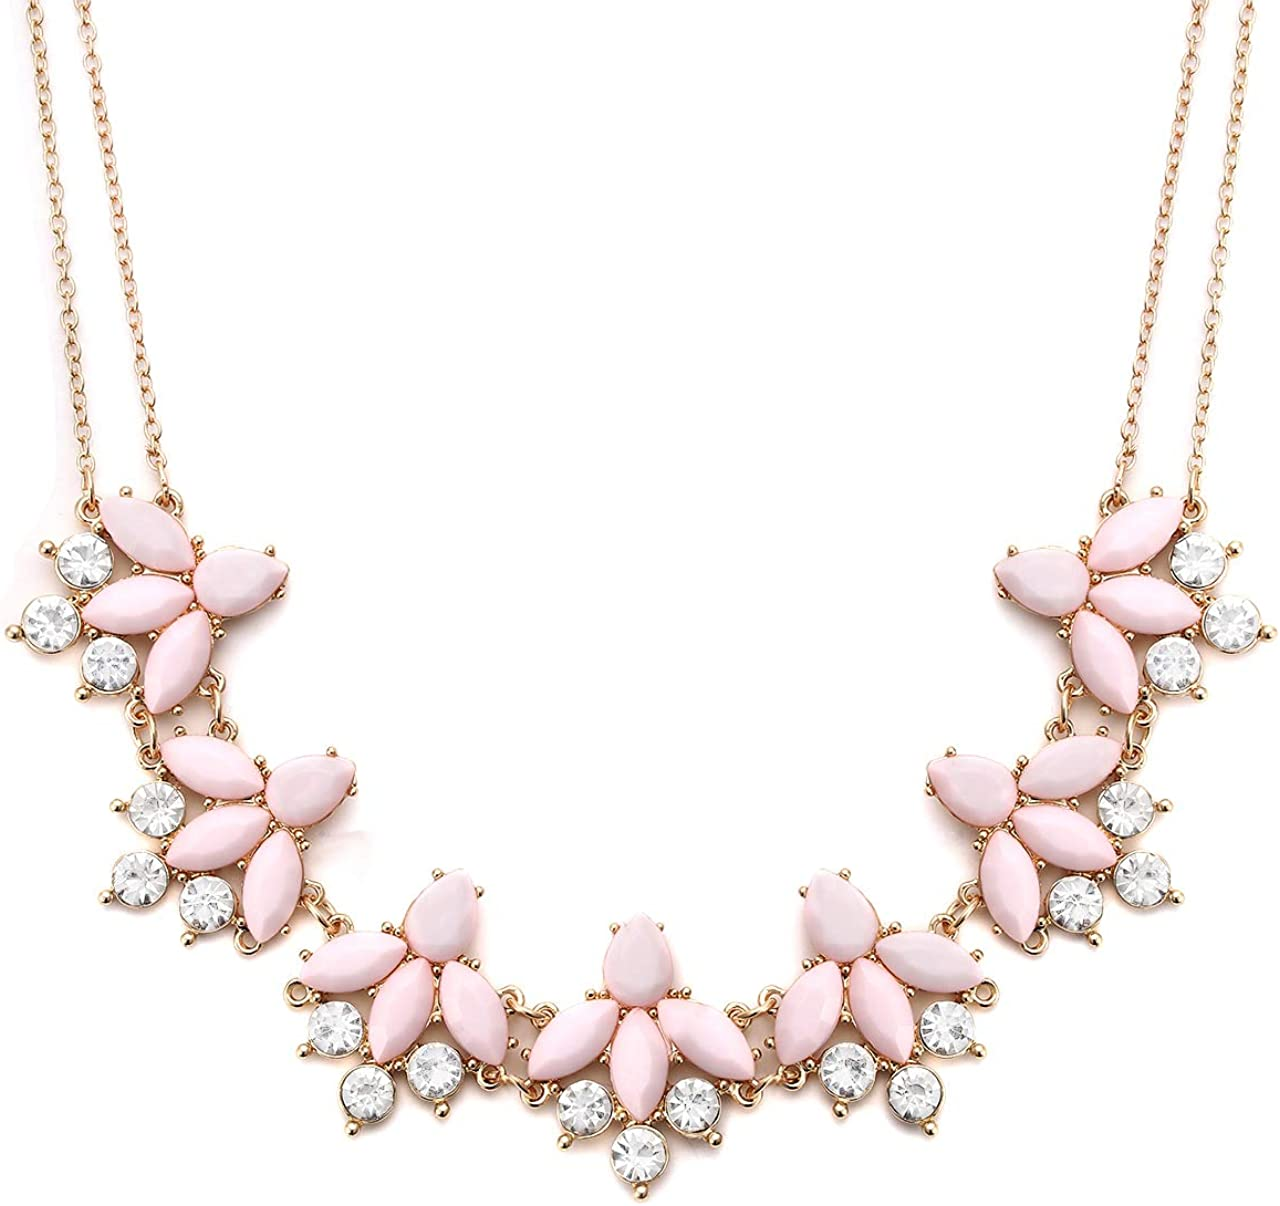 Crystal Flower Collar Necklace Sale SALE% OFF for Women wholesale Rhinestone Chunky Flora